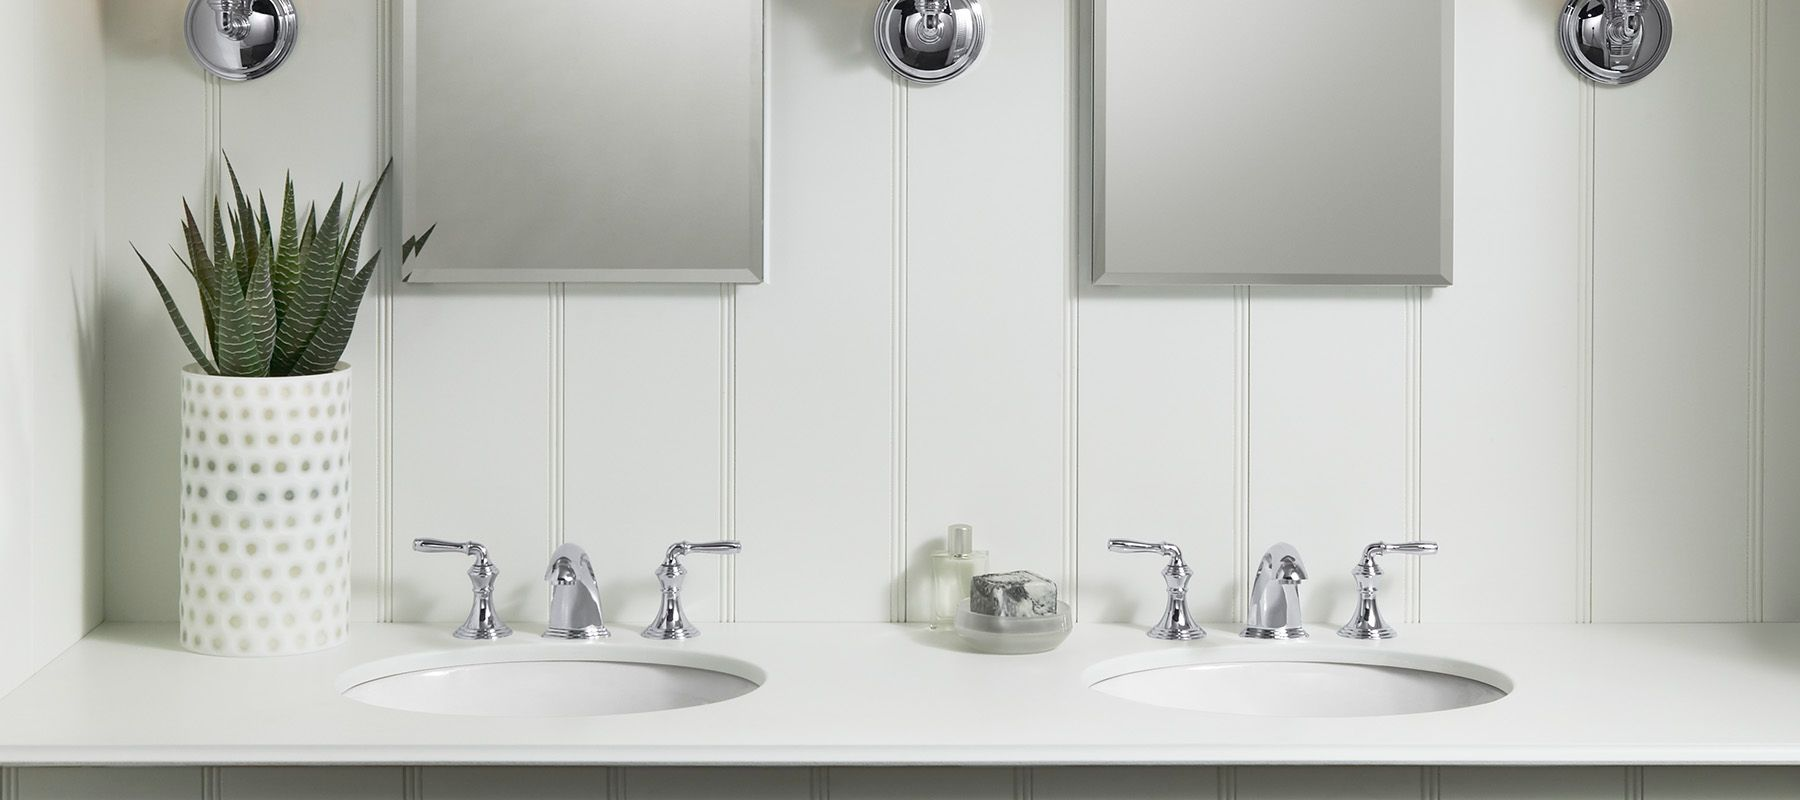 Double Bathroom Vanities South Africa bathroom sinks | bathroom | kohler